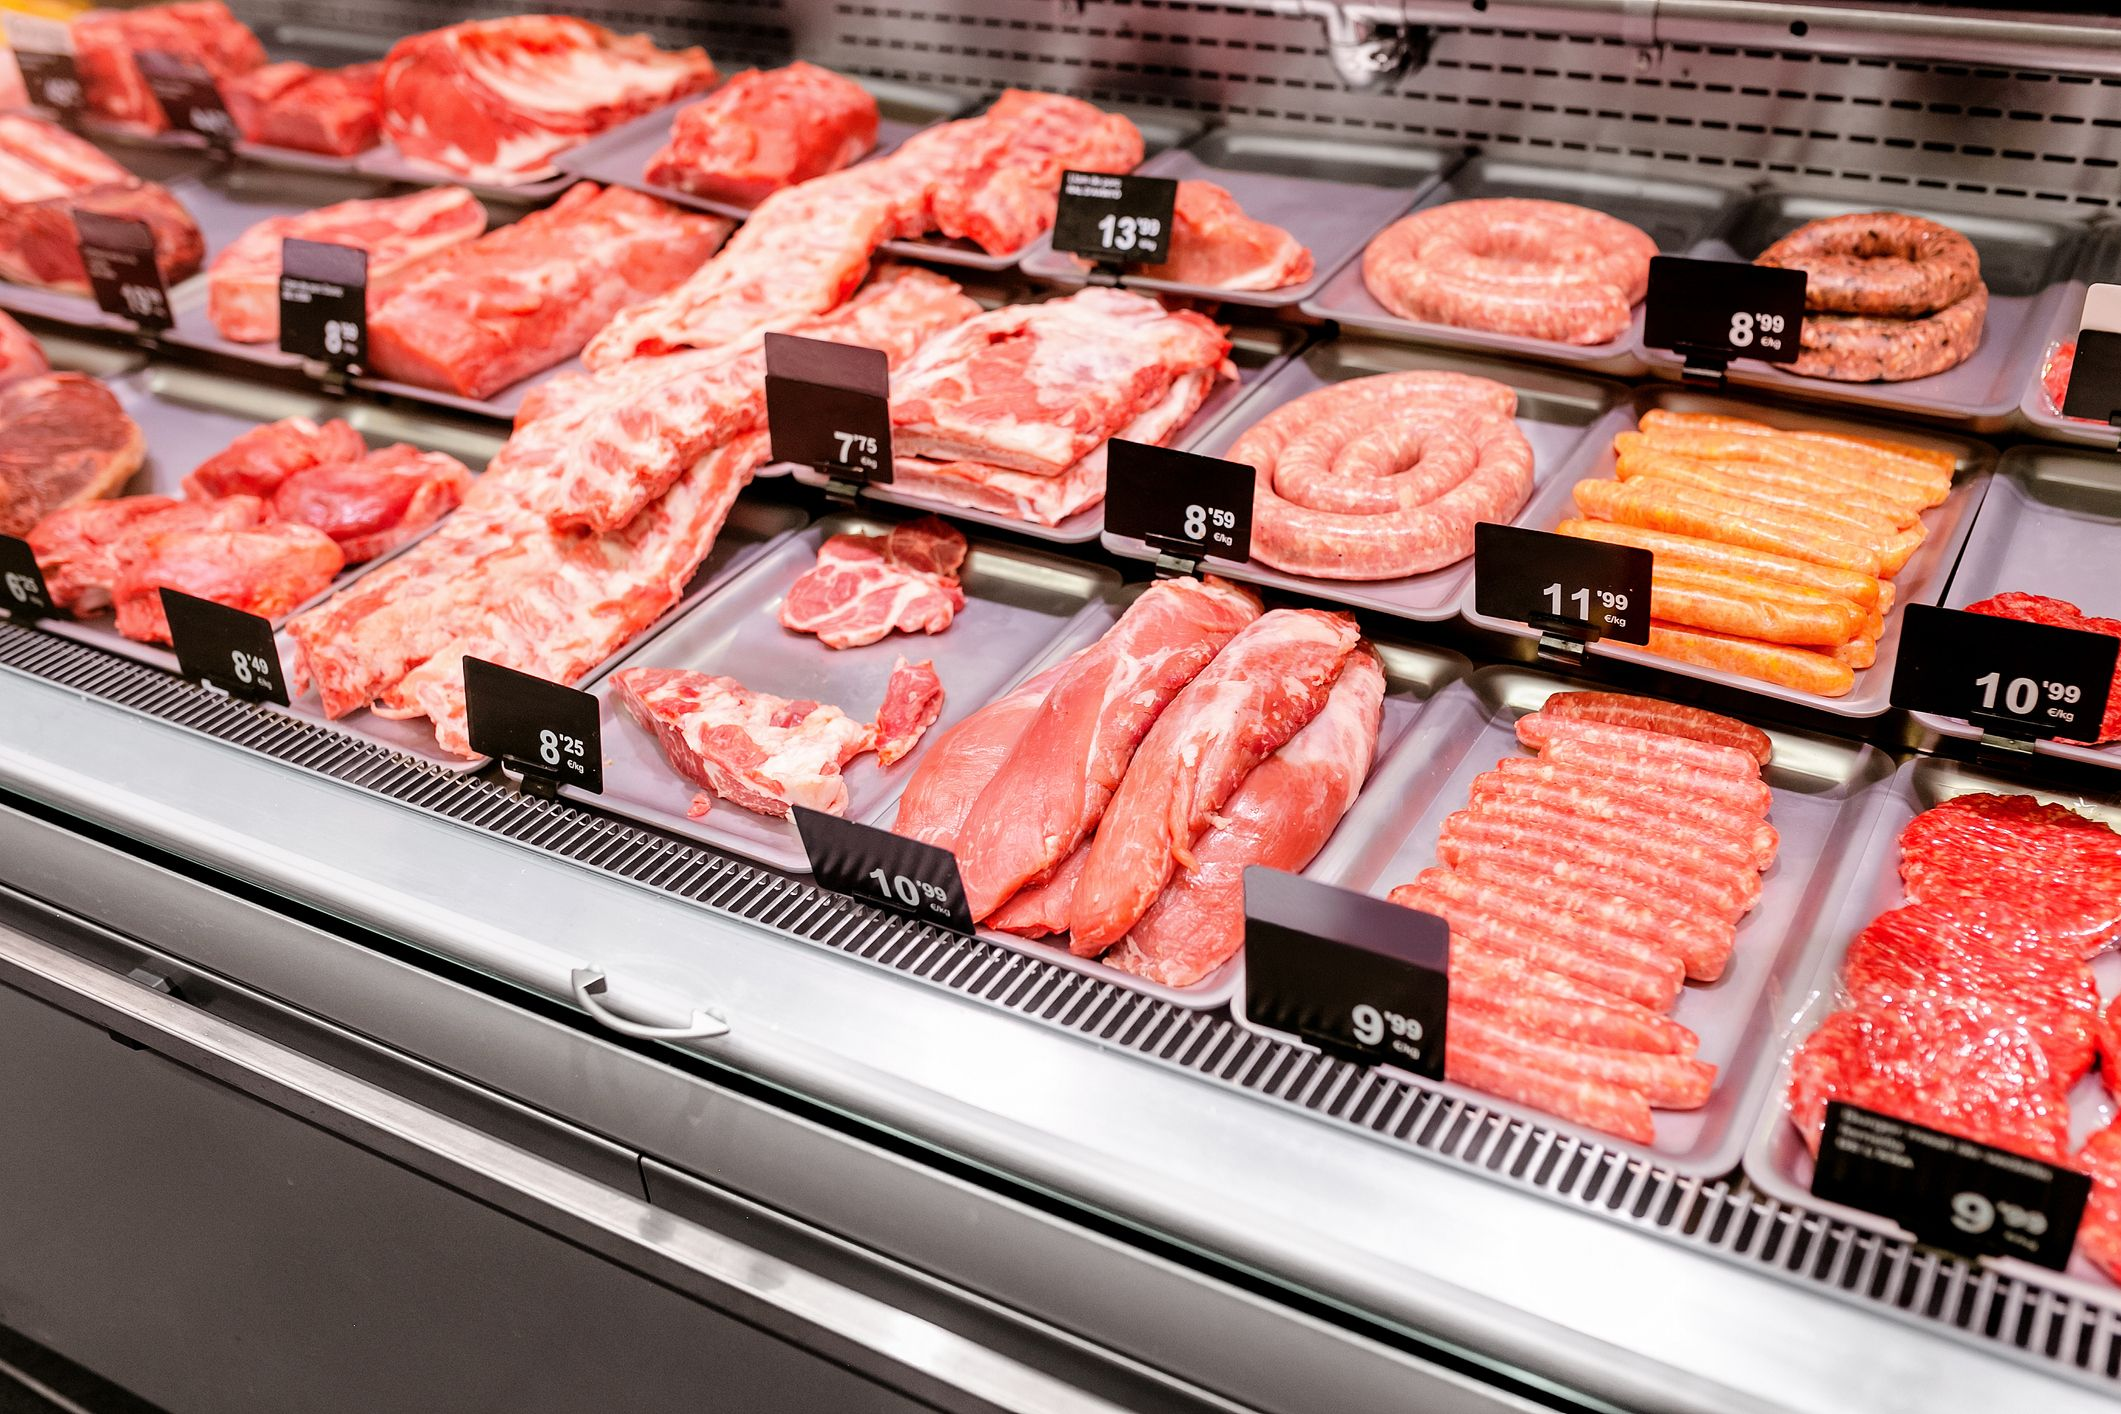 Listeria Outbreaks Are Hitting Countries Across The World, Sickening Hundreds